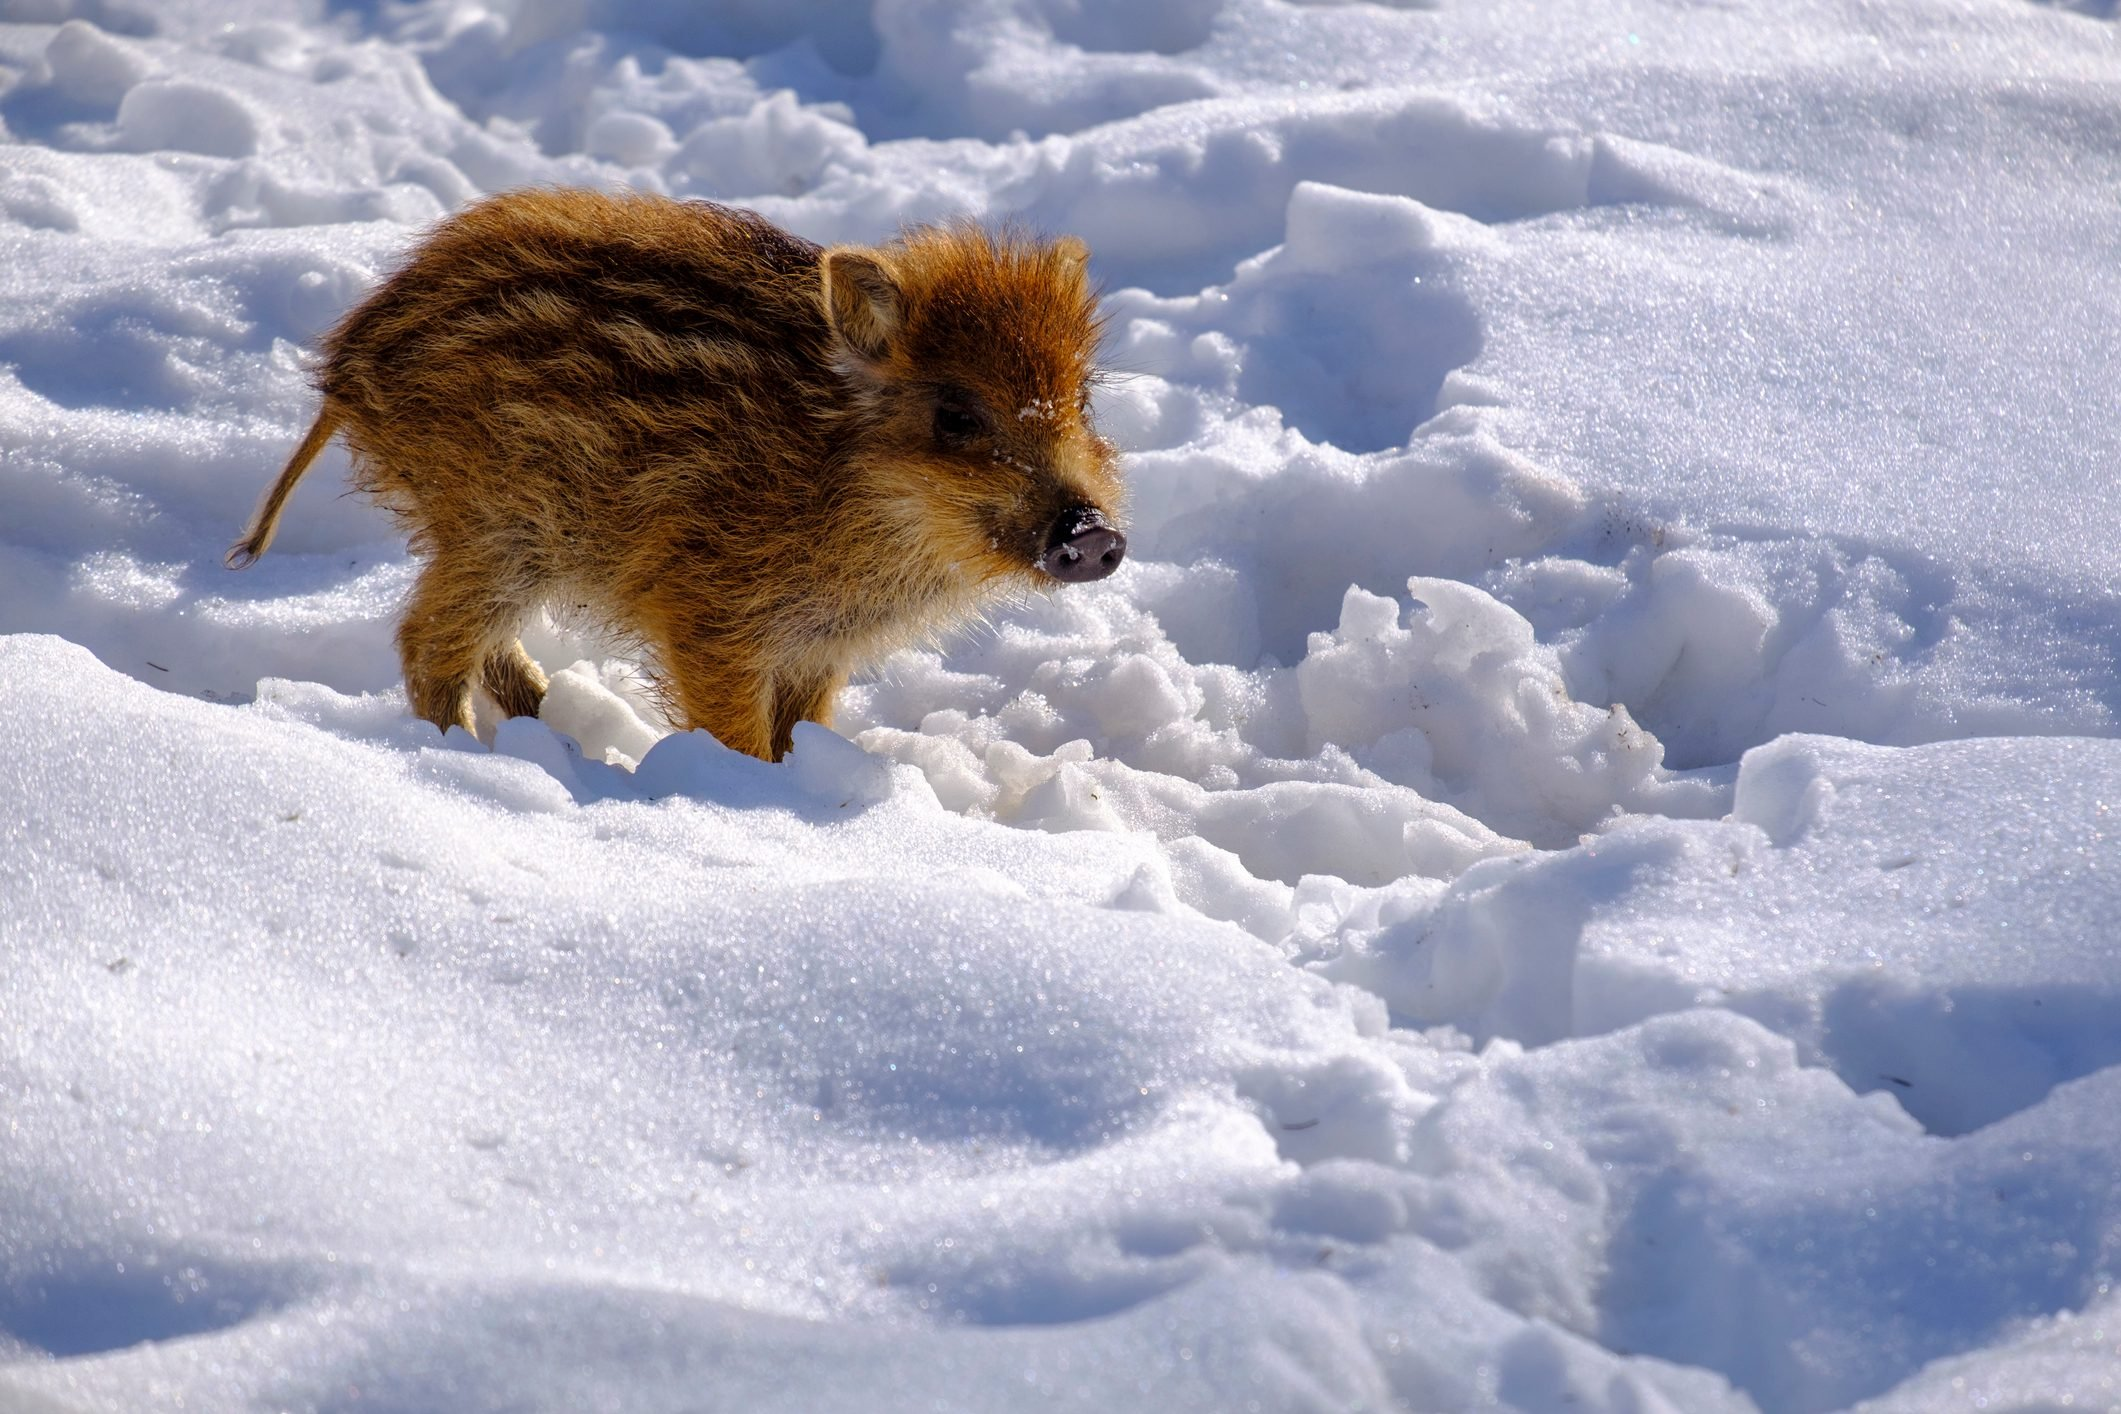 Wild boar shote in snow